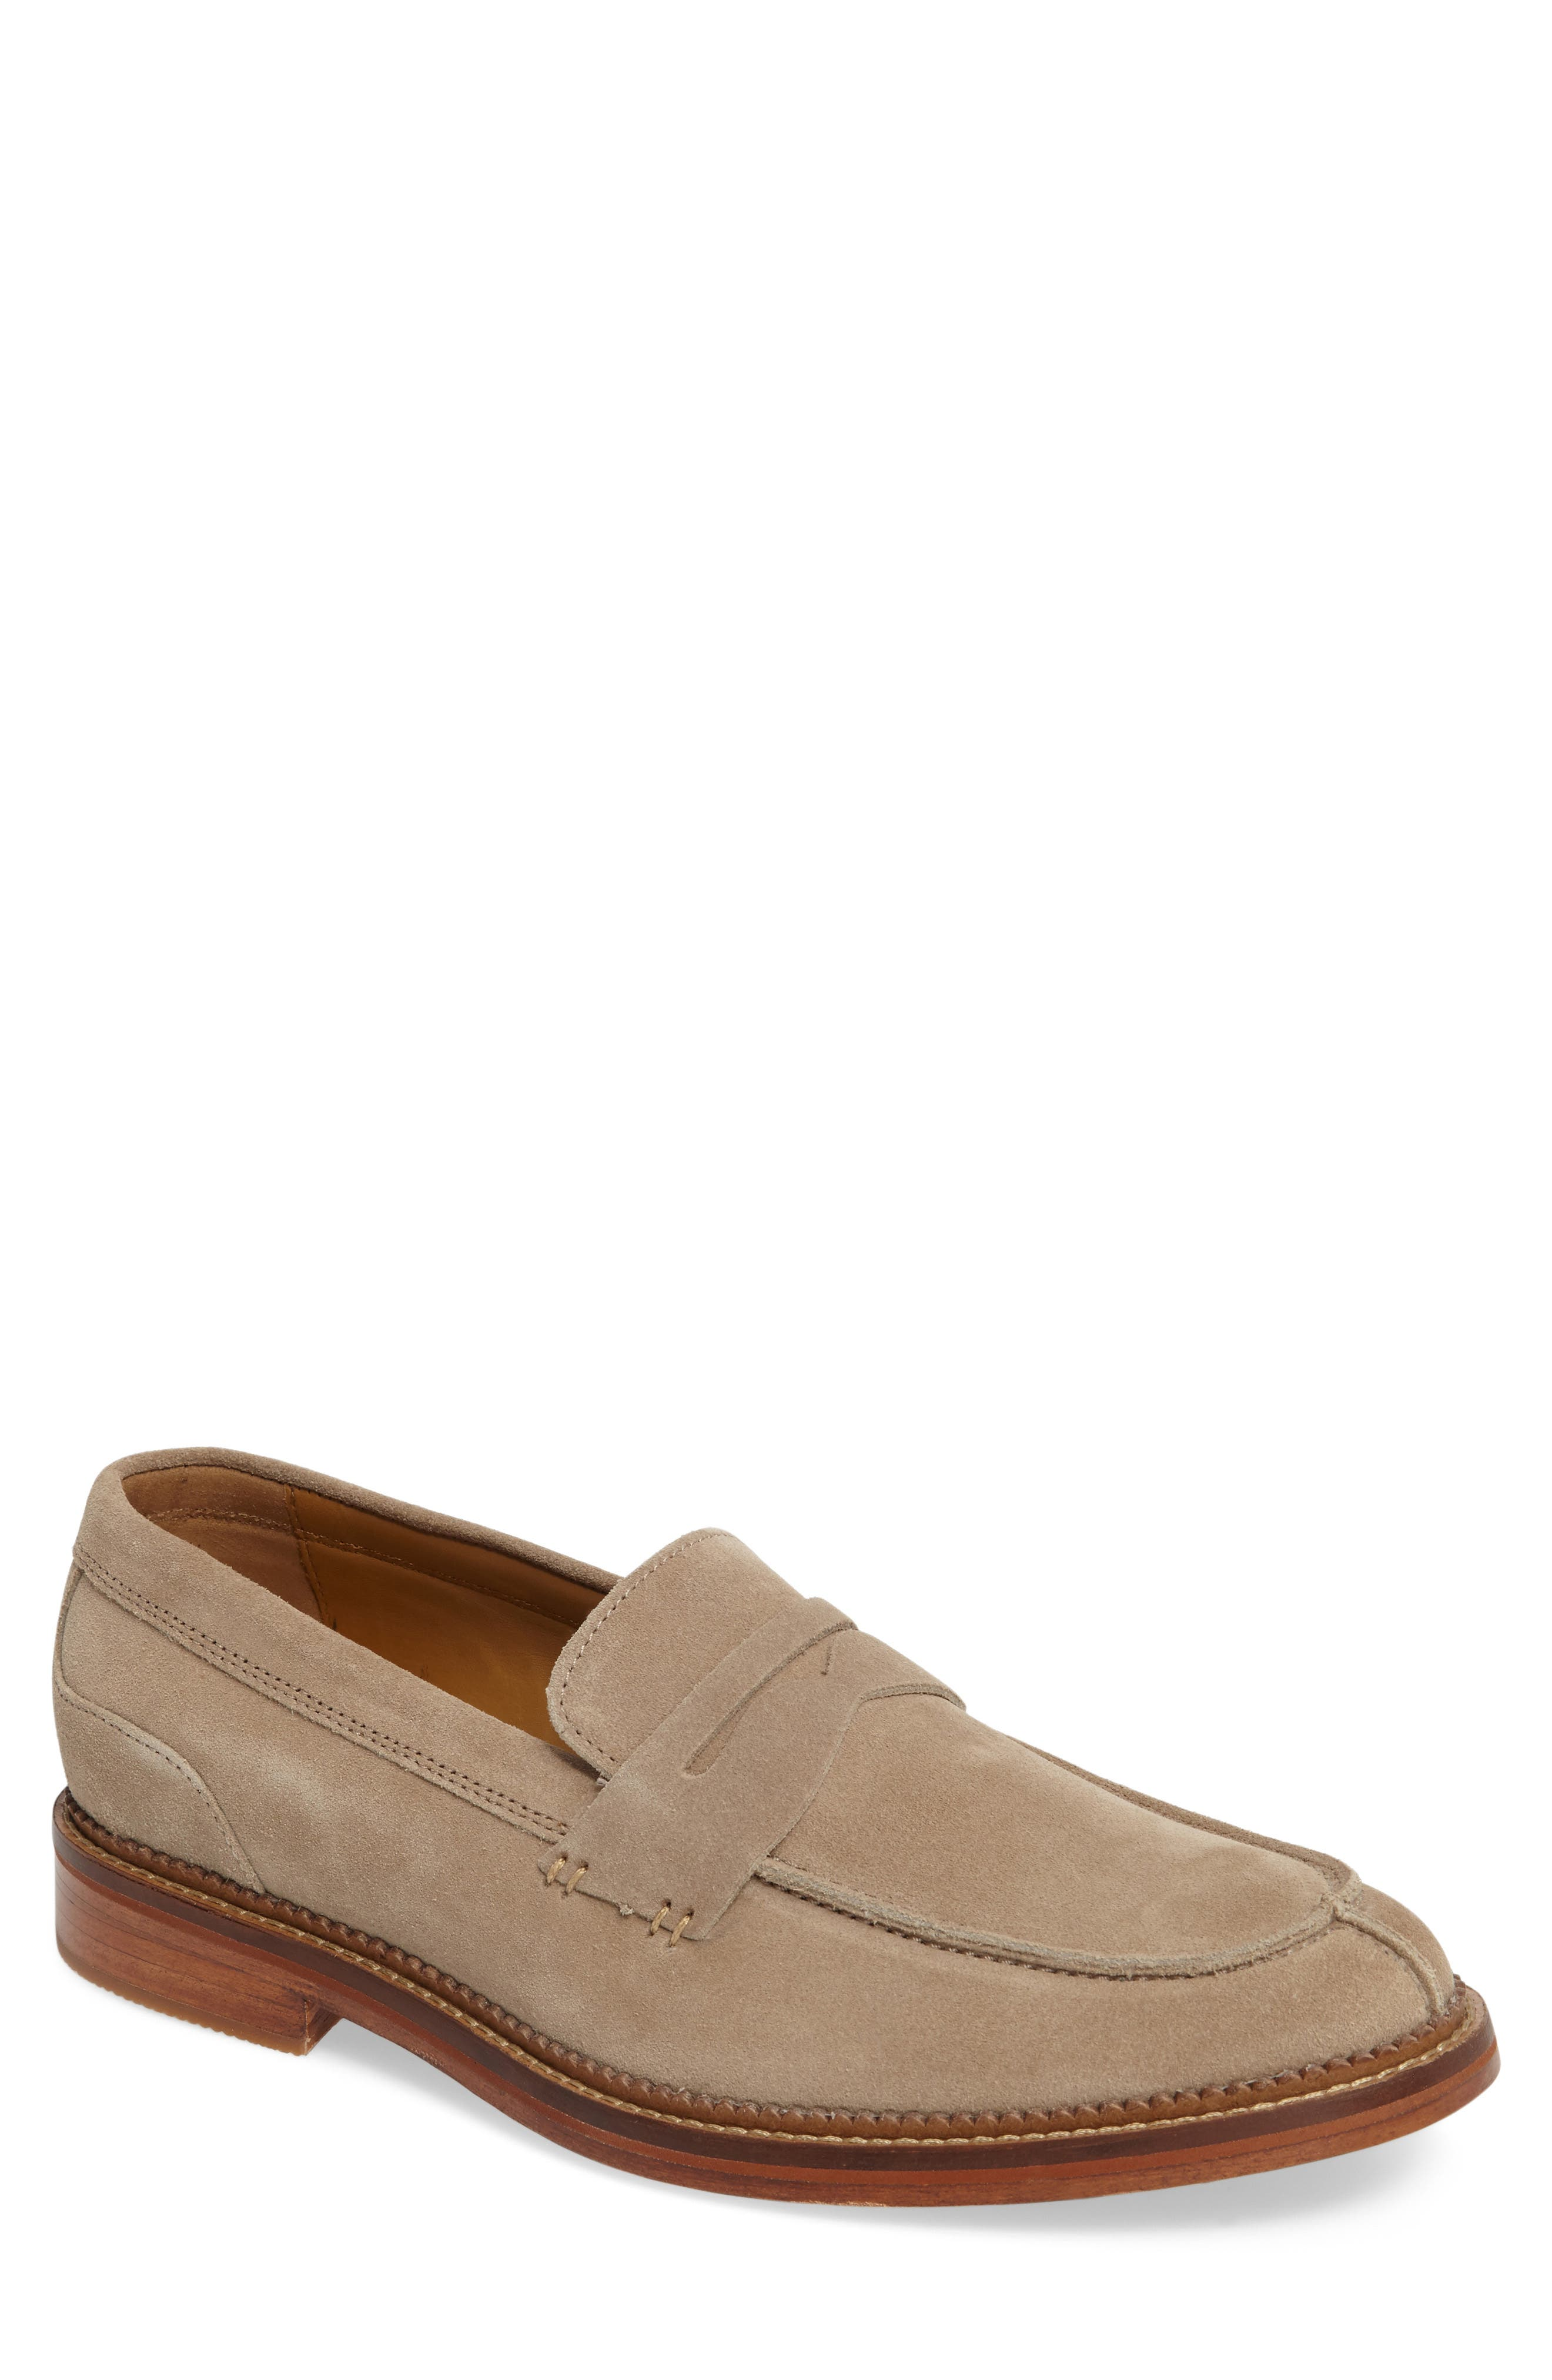 Ravenwood Penny Loafer,                             Main thumbnail 3, color,